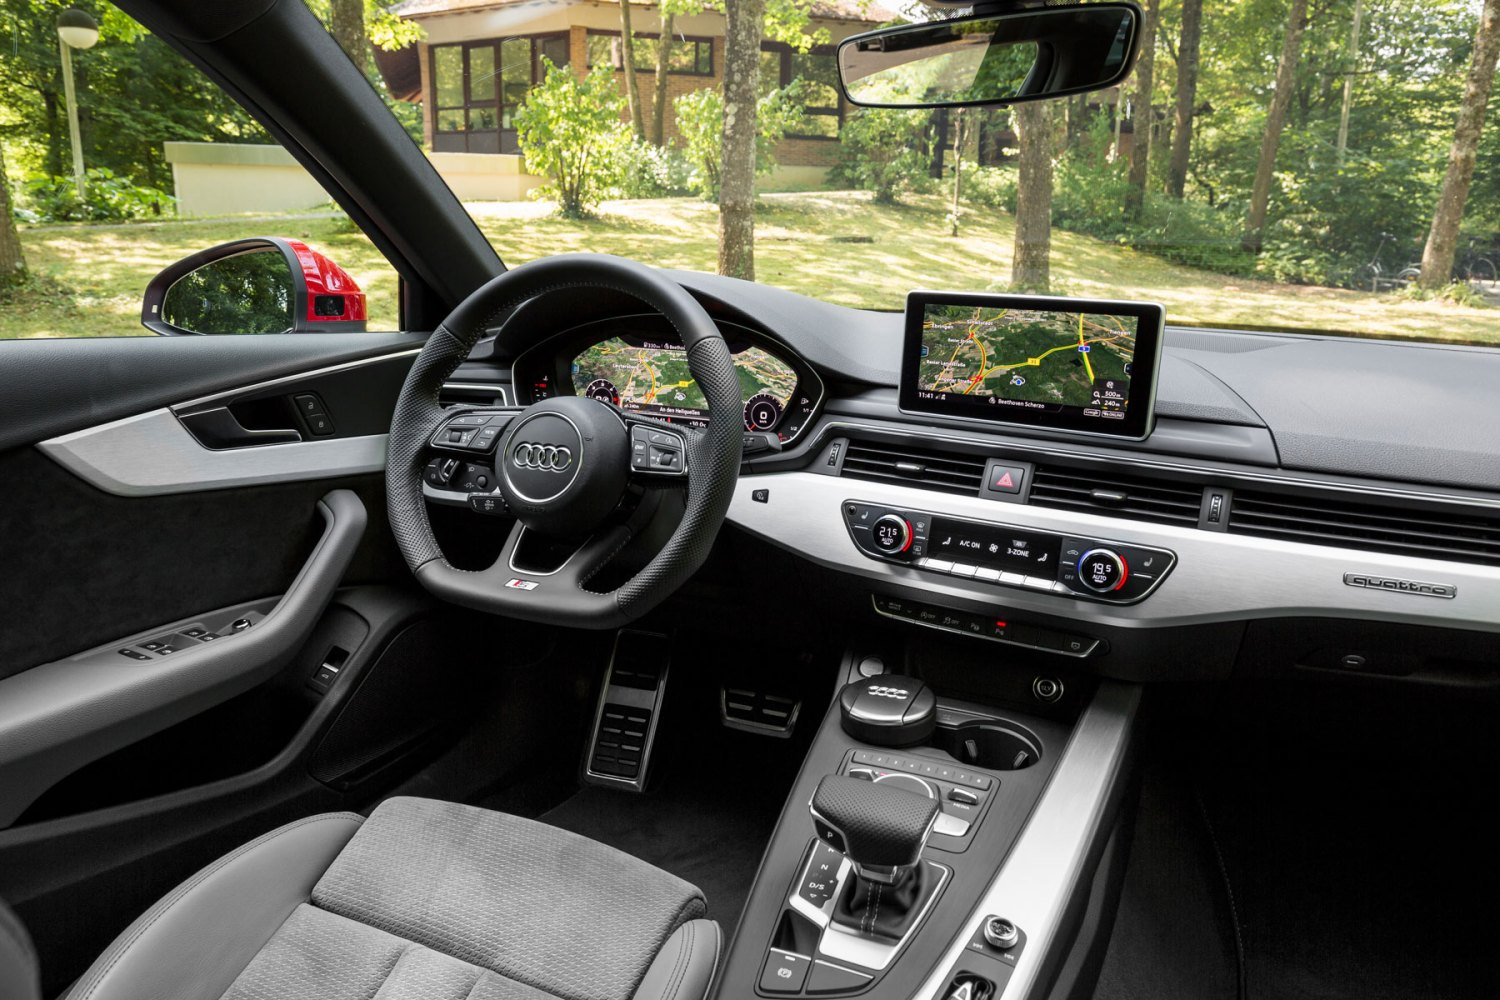 2016 Audi A4: on the inside